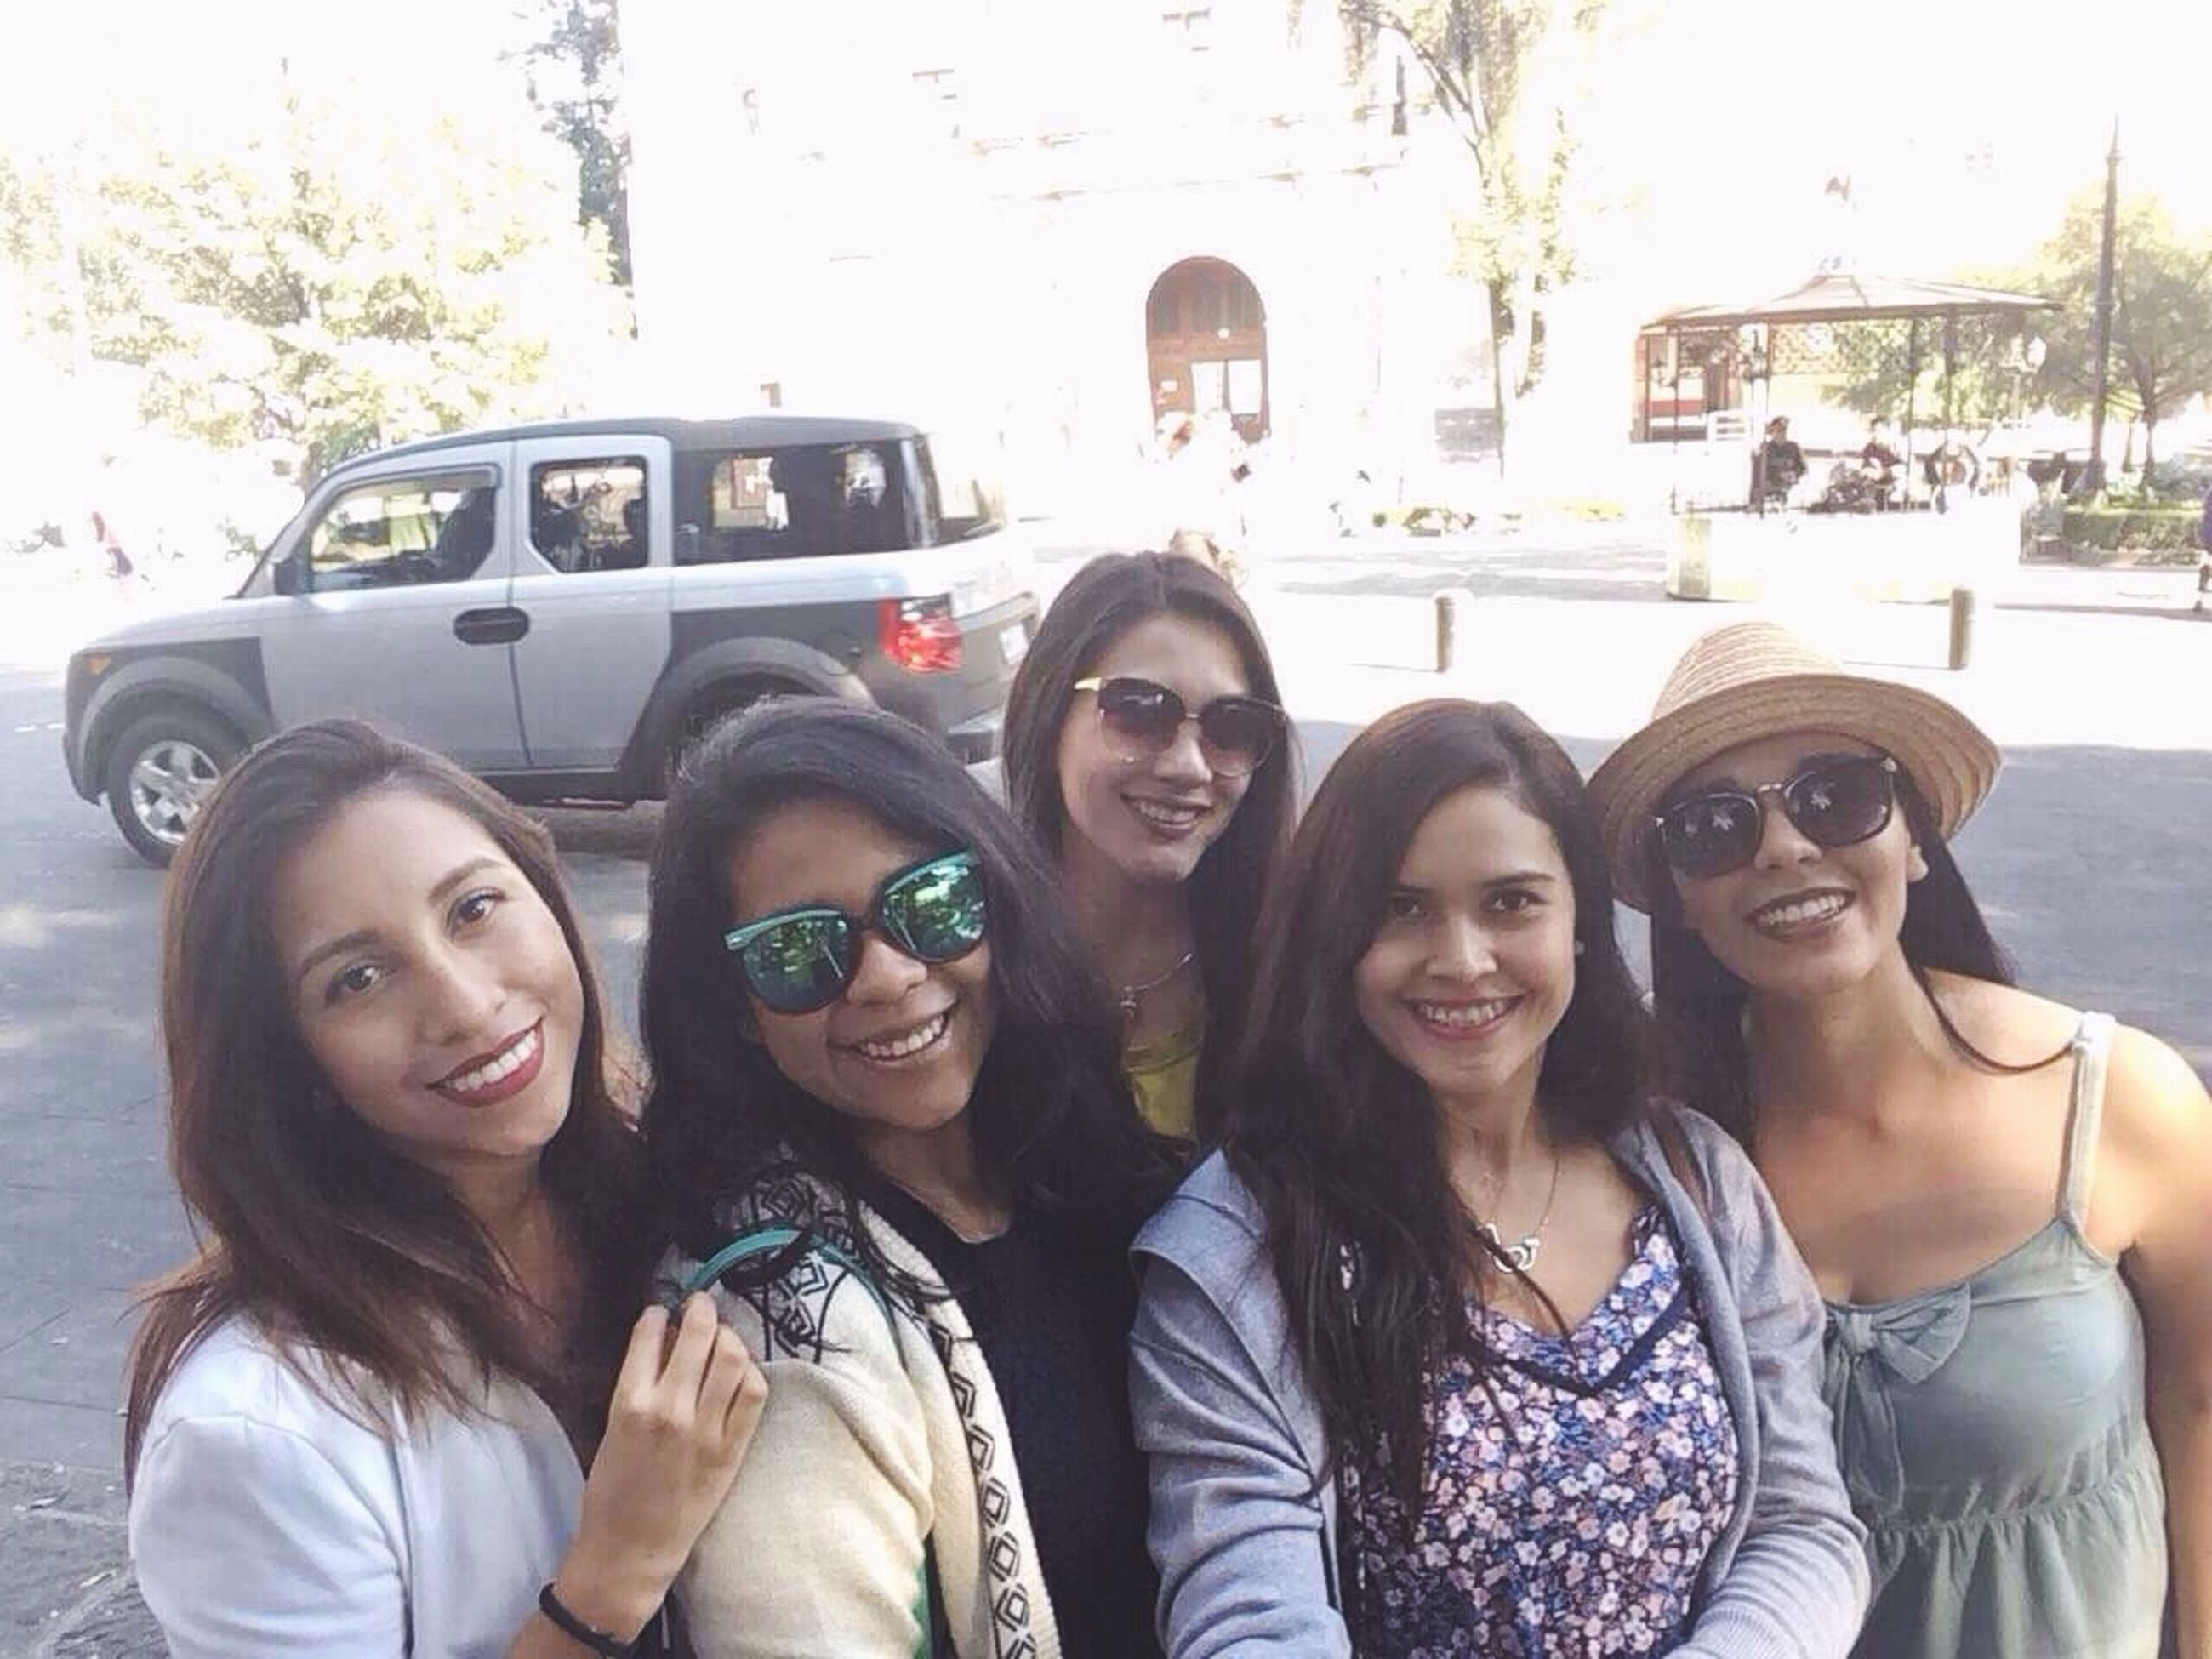 friendship, young adult, sunglasses, smiling, looking at camera, young women, portrait, carefree, cheerful, travel, women, enjoyment, outdoors, city, happiness, adult, lifestyles, car, people, togetherness, student, group of people, adults only, day, sky